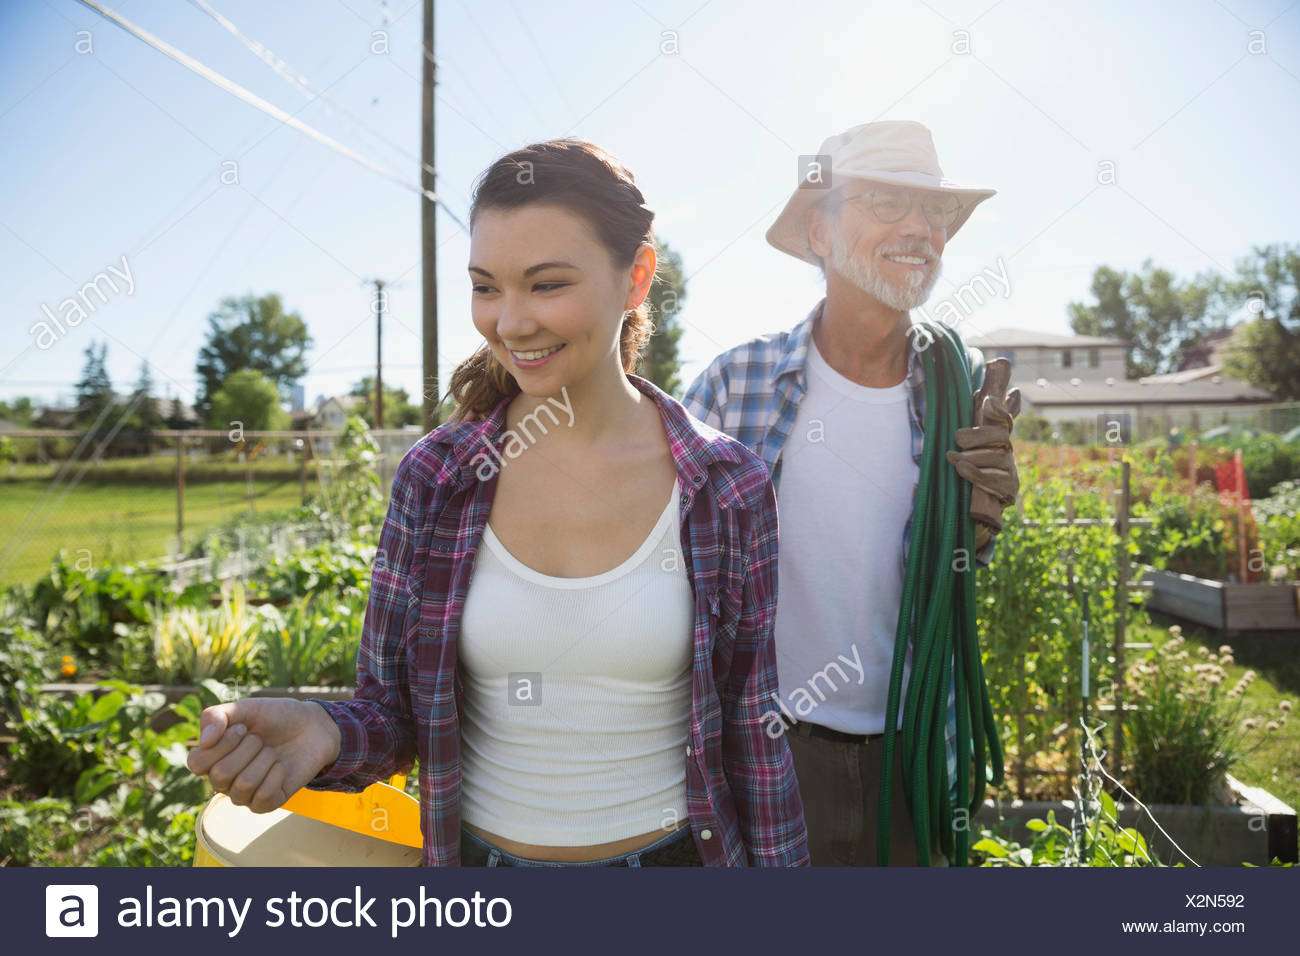 Smiling father and daughter in sunny garden - Stock Image